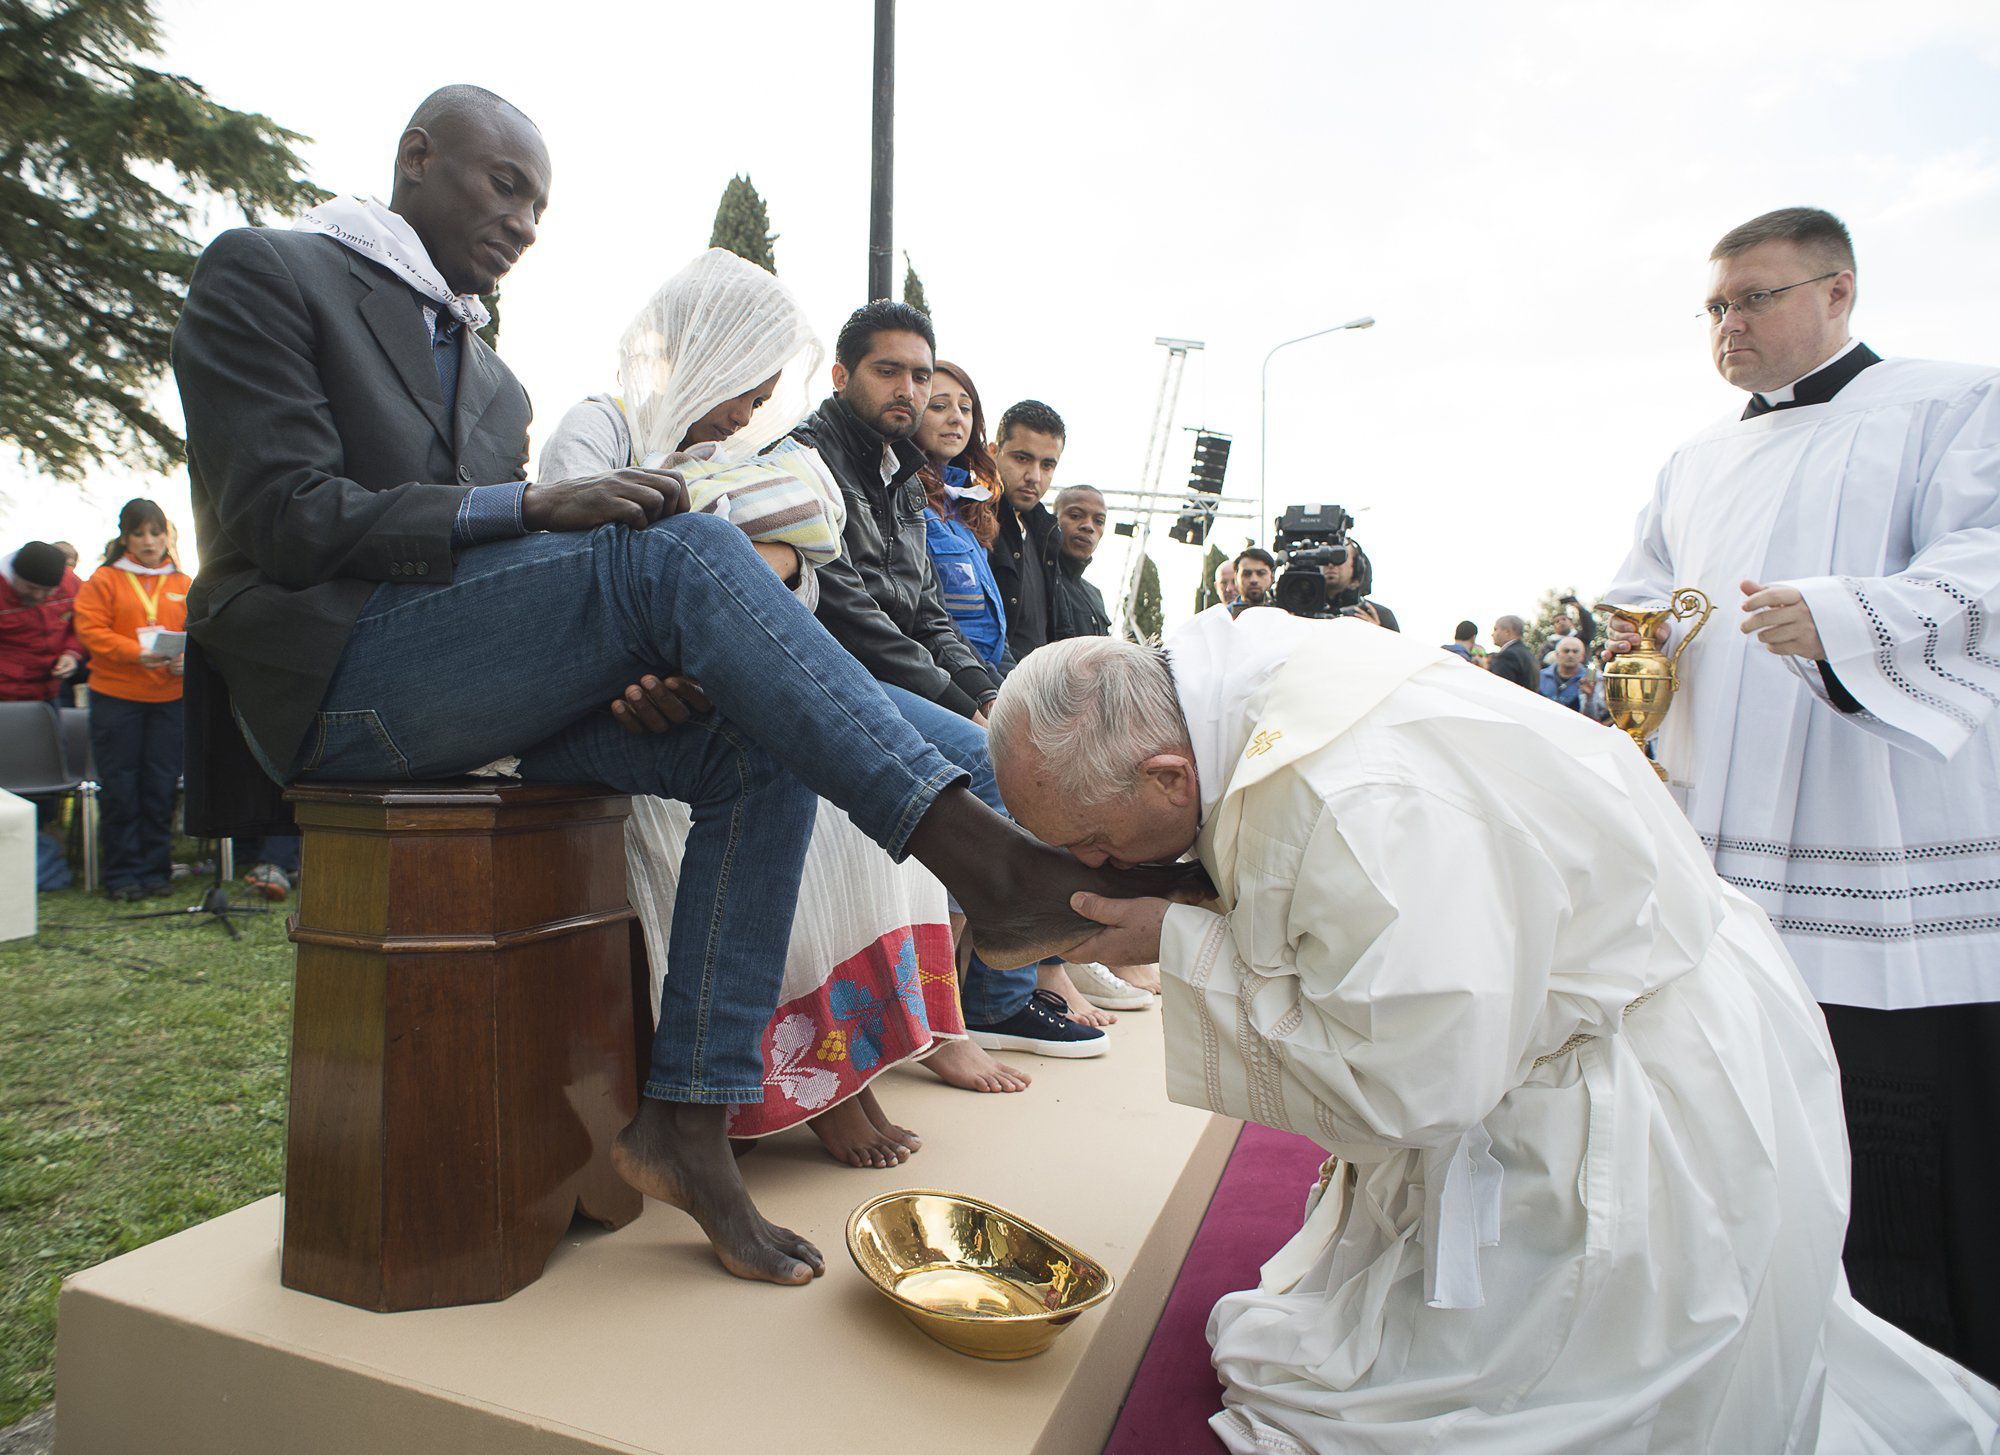 Pope Francis kisses the foot of a man during the foot-washing ritual at the Castelnuovo di Porto refugees center near Rome, Italy on March 24, 2016.